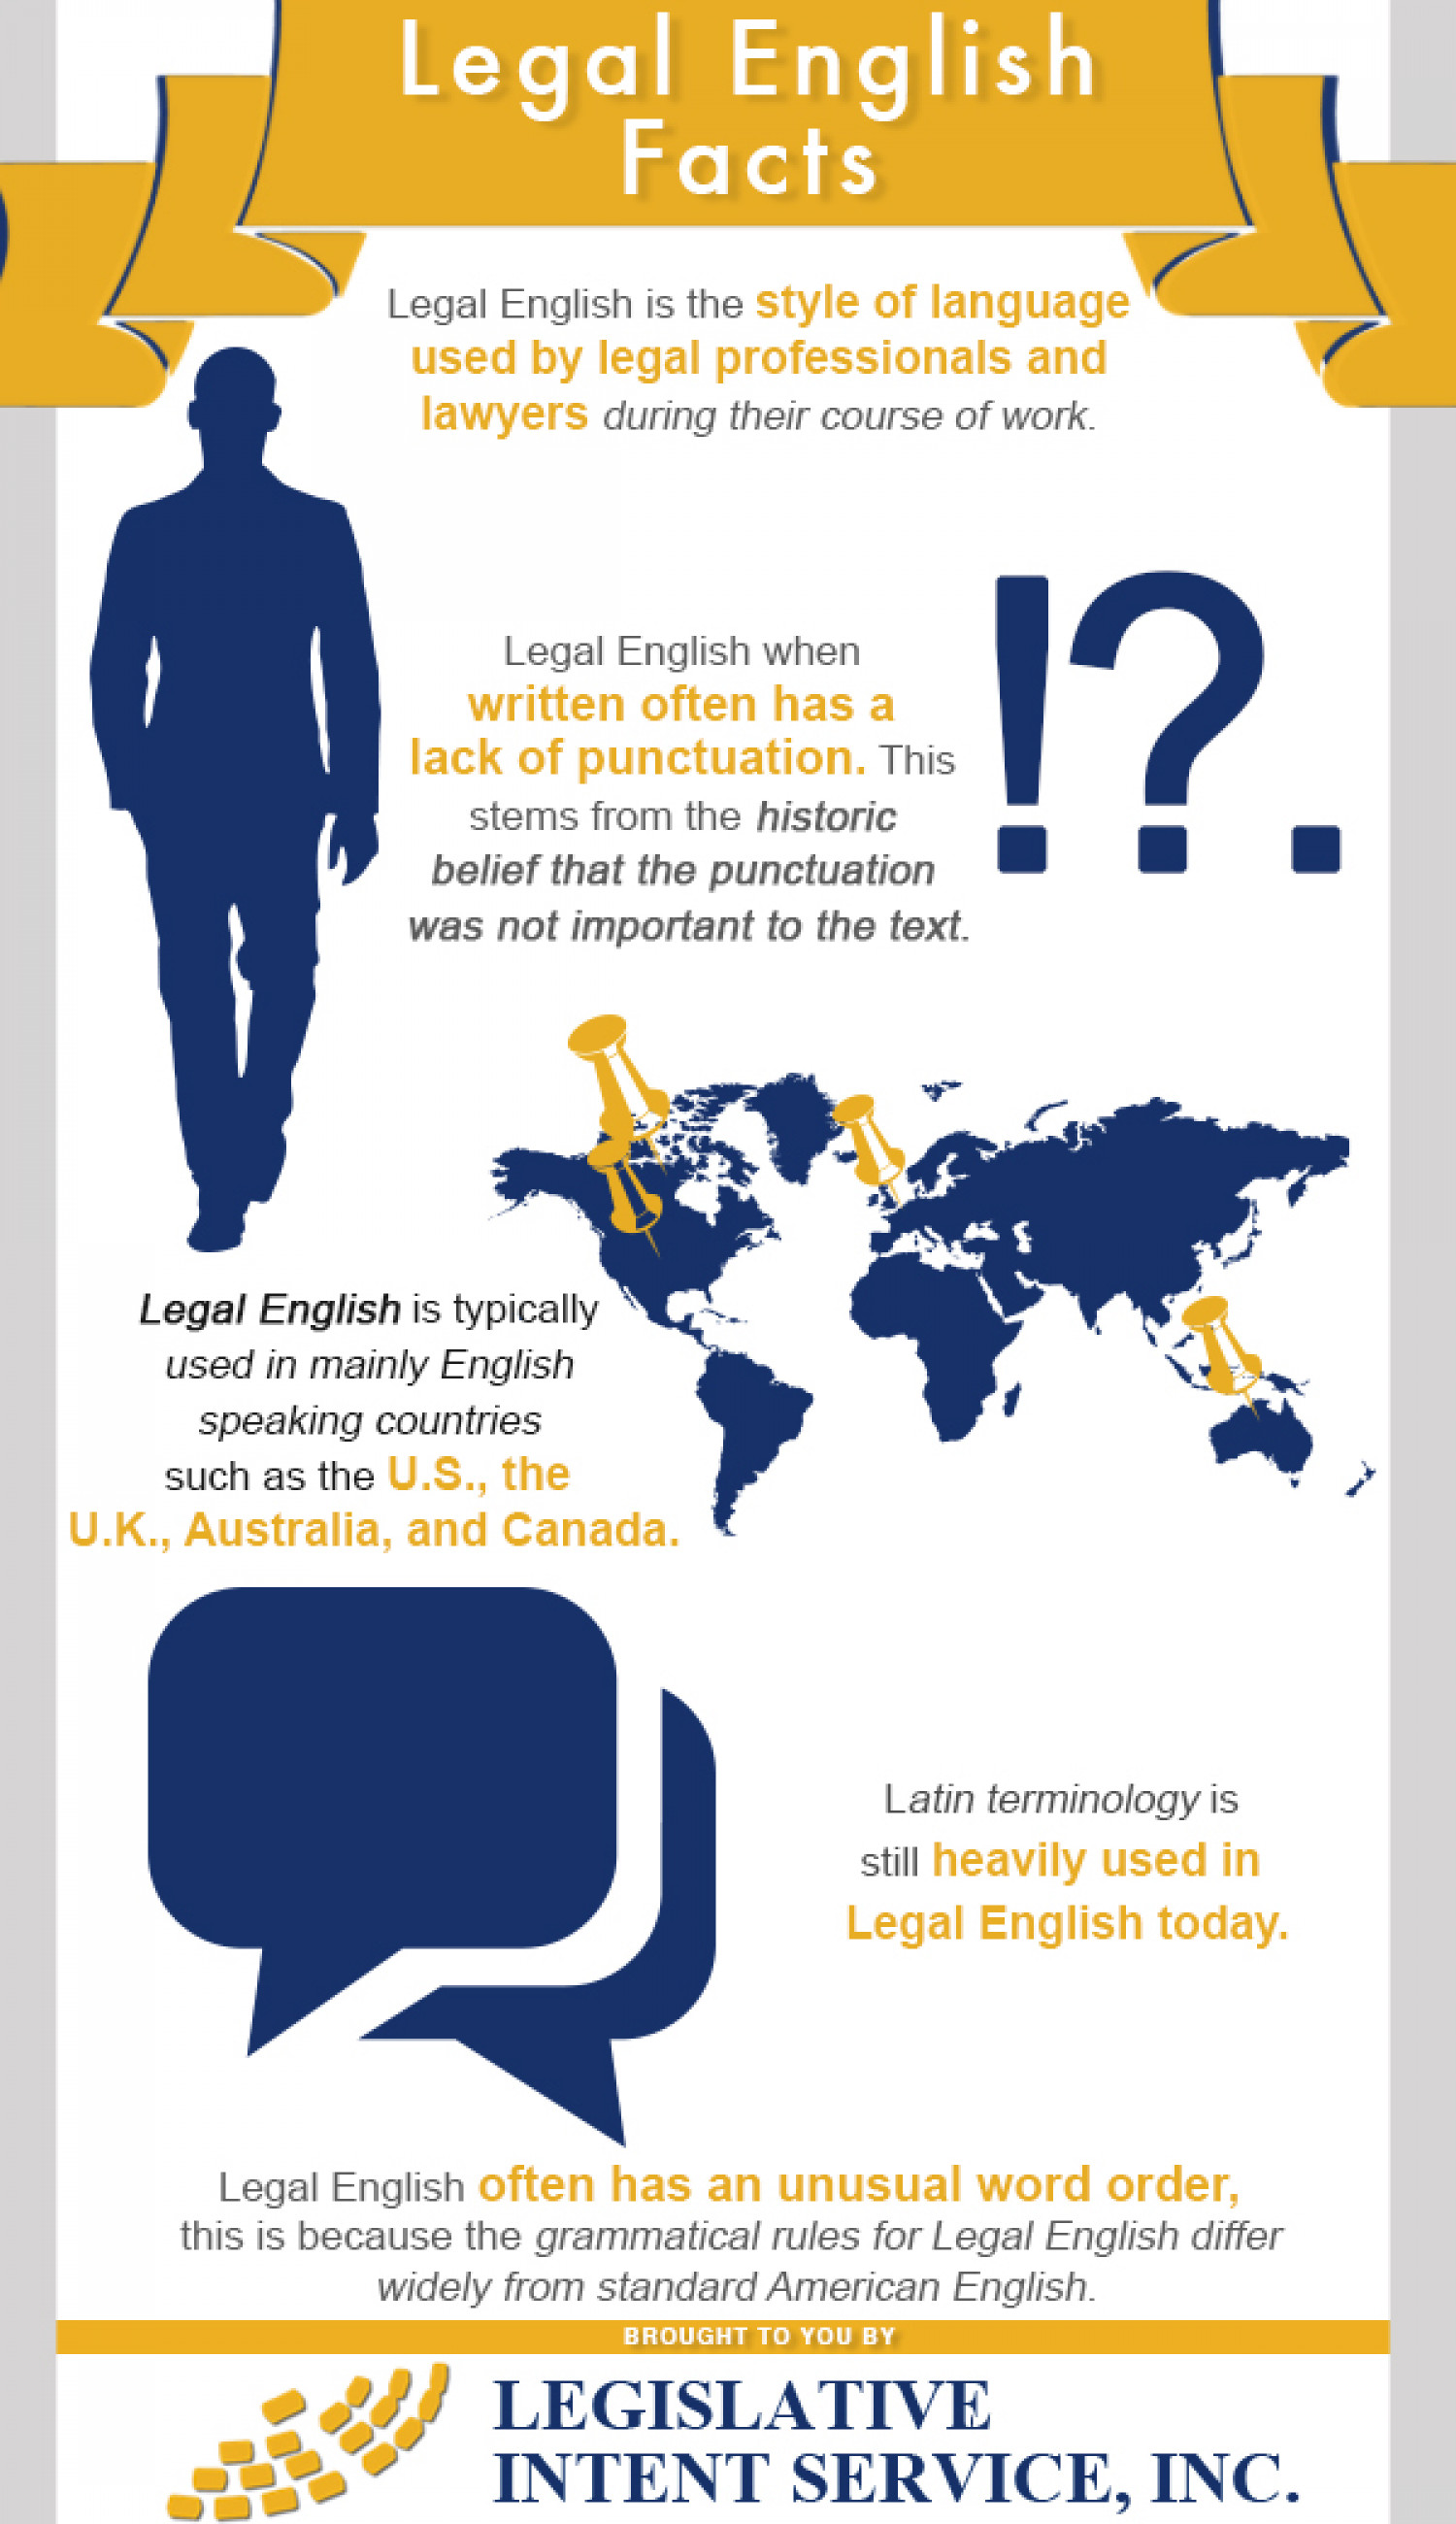 Legal English Facts Infographic